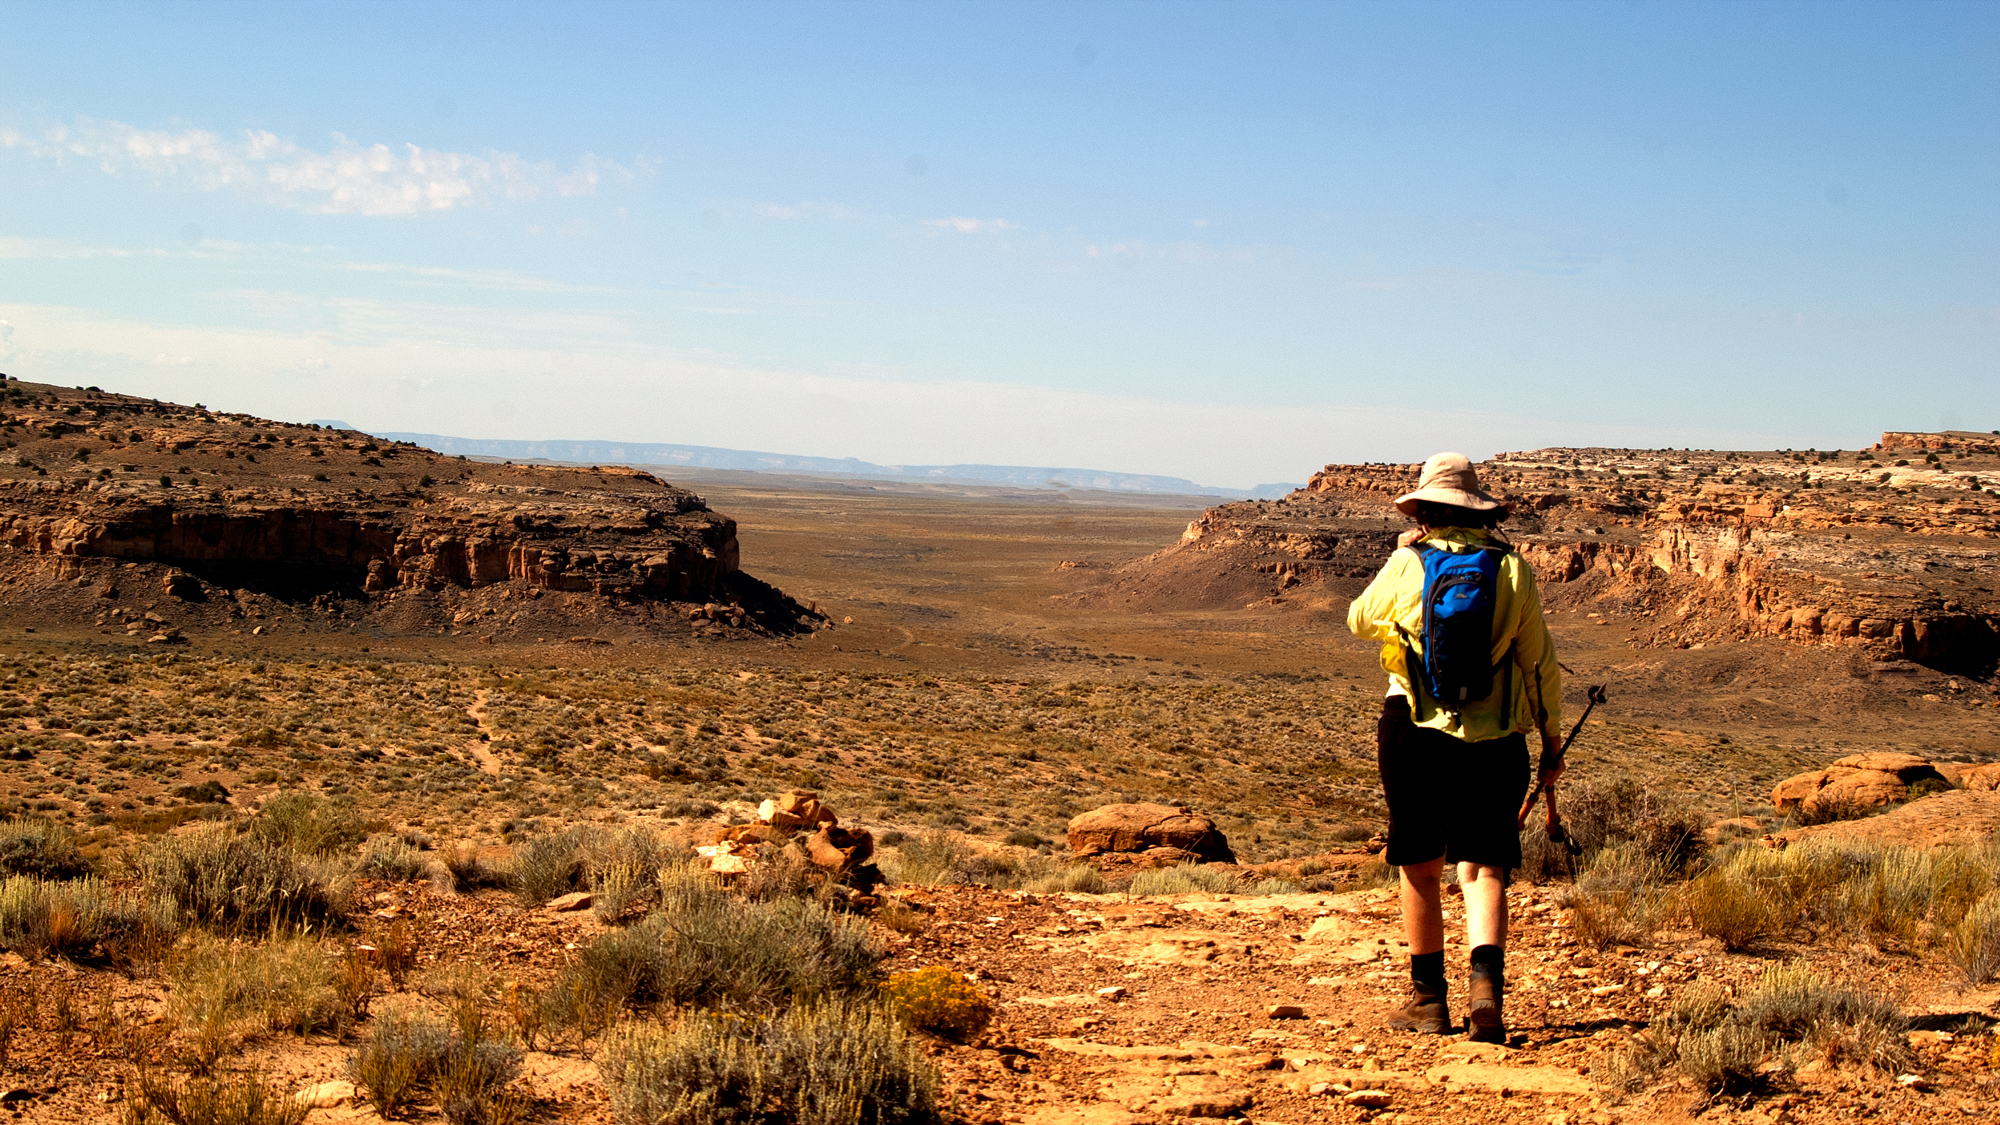 A hiker on the Pueblo Alto trail near the canyon rim.